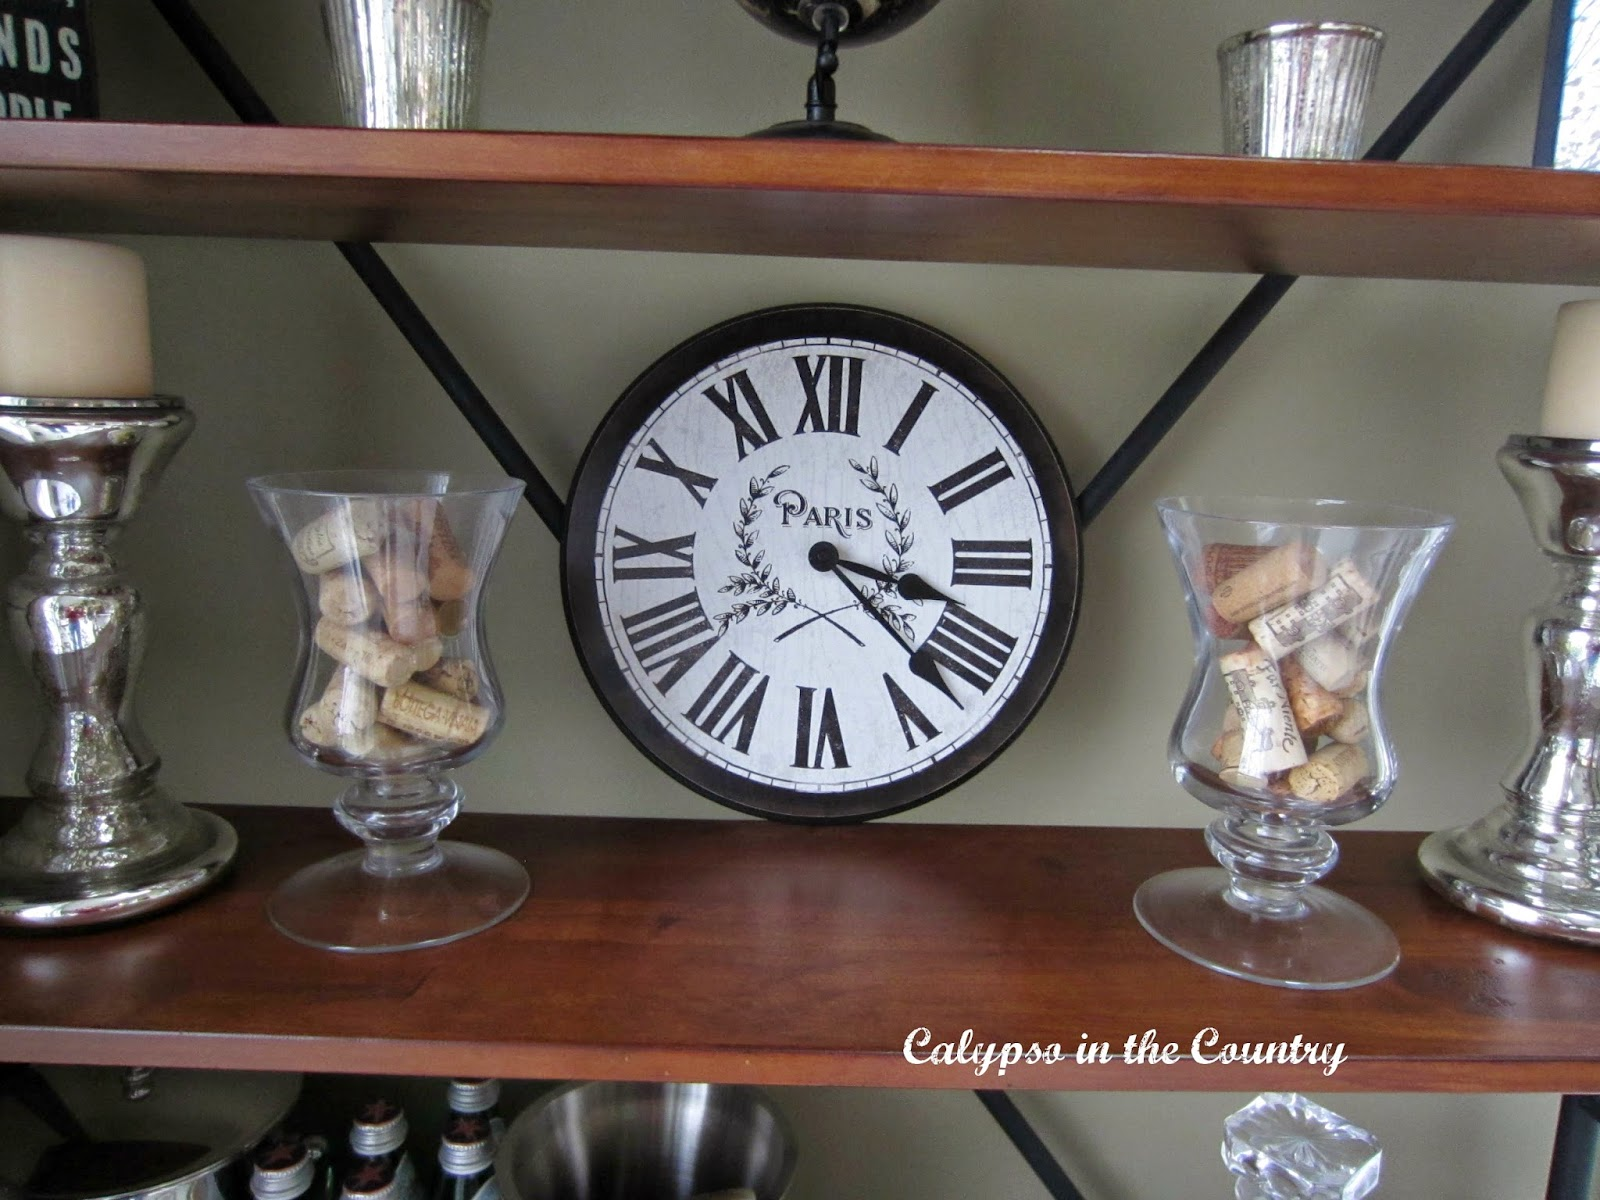 calypso in the country clocks in my home i purchased this clock from the big clock store